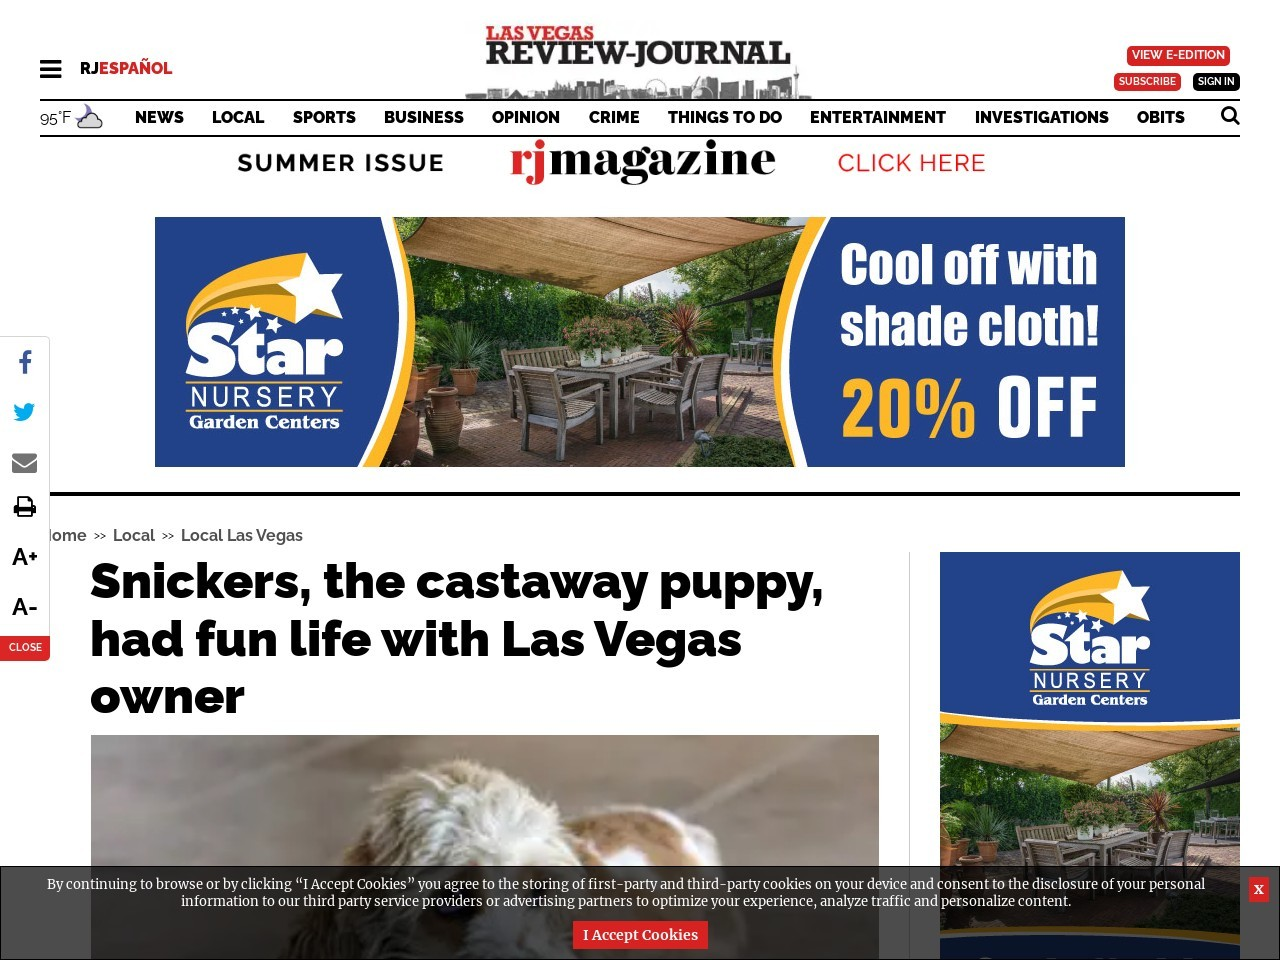 Snickers, the castaway puppy, had fun life with Las Vegas owner